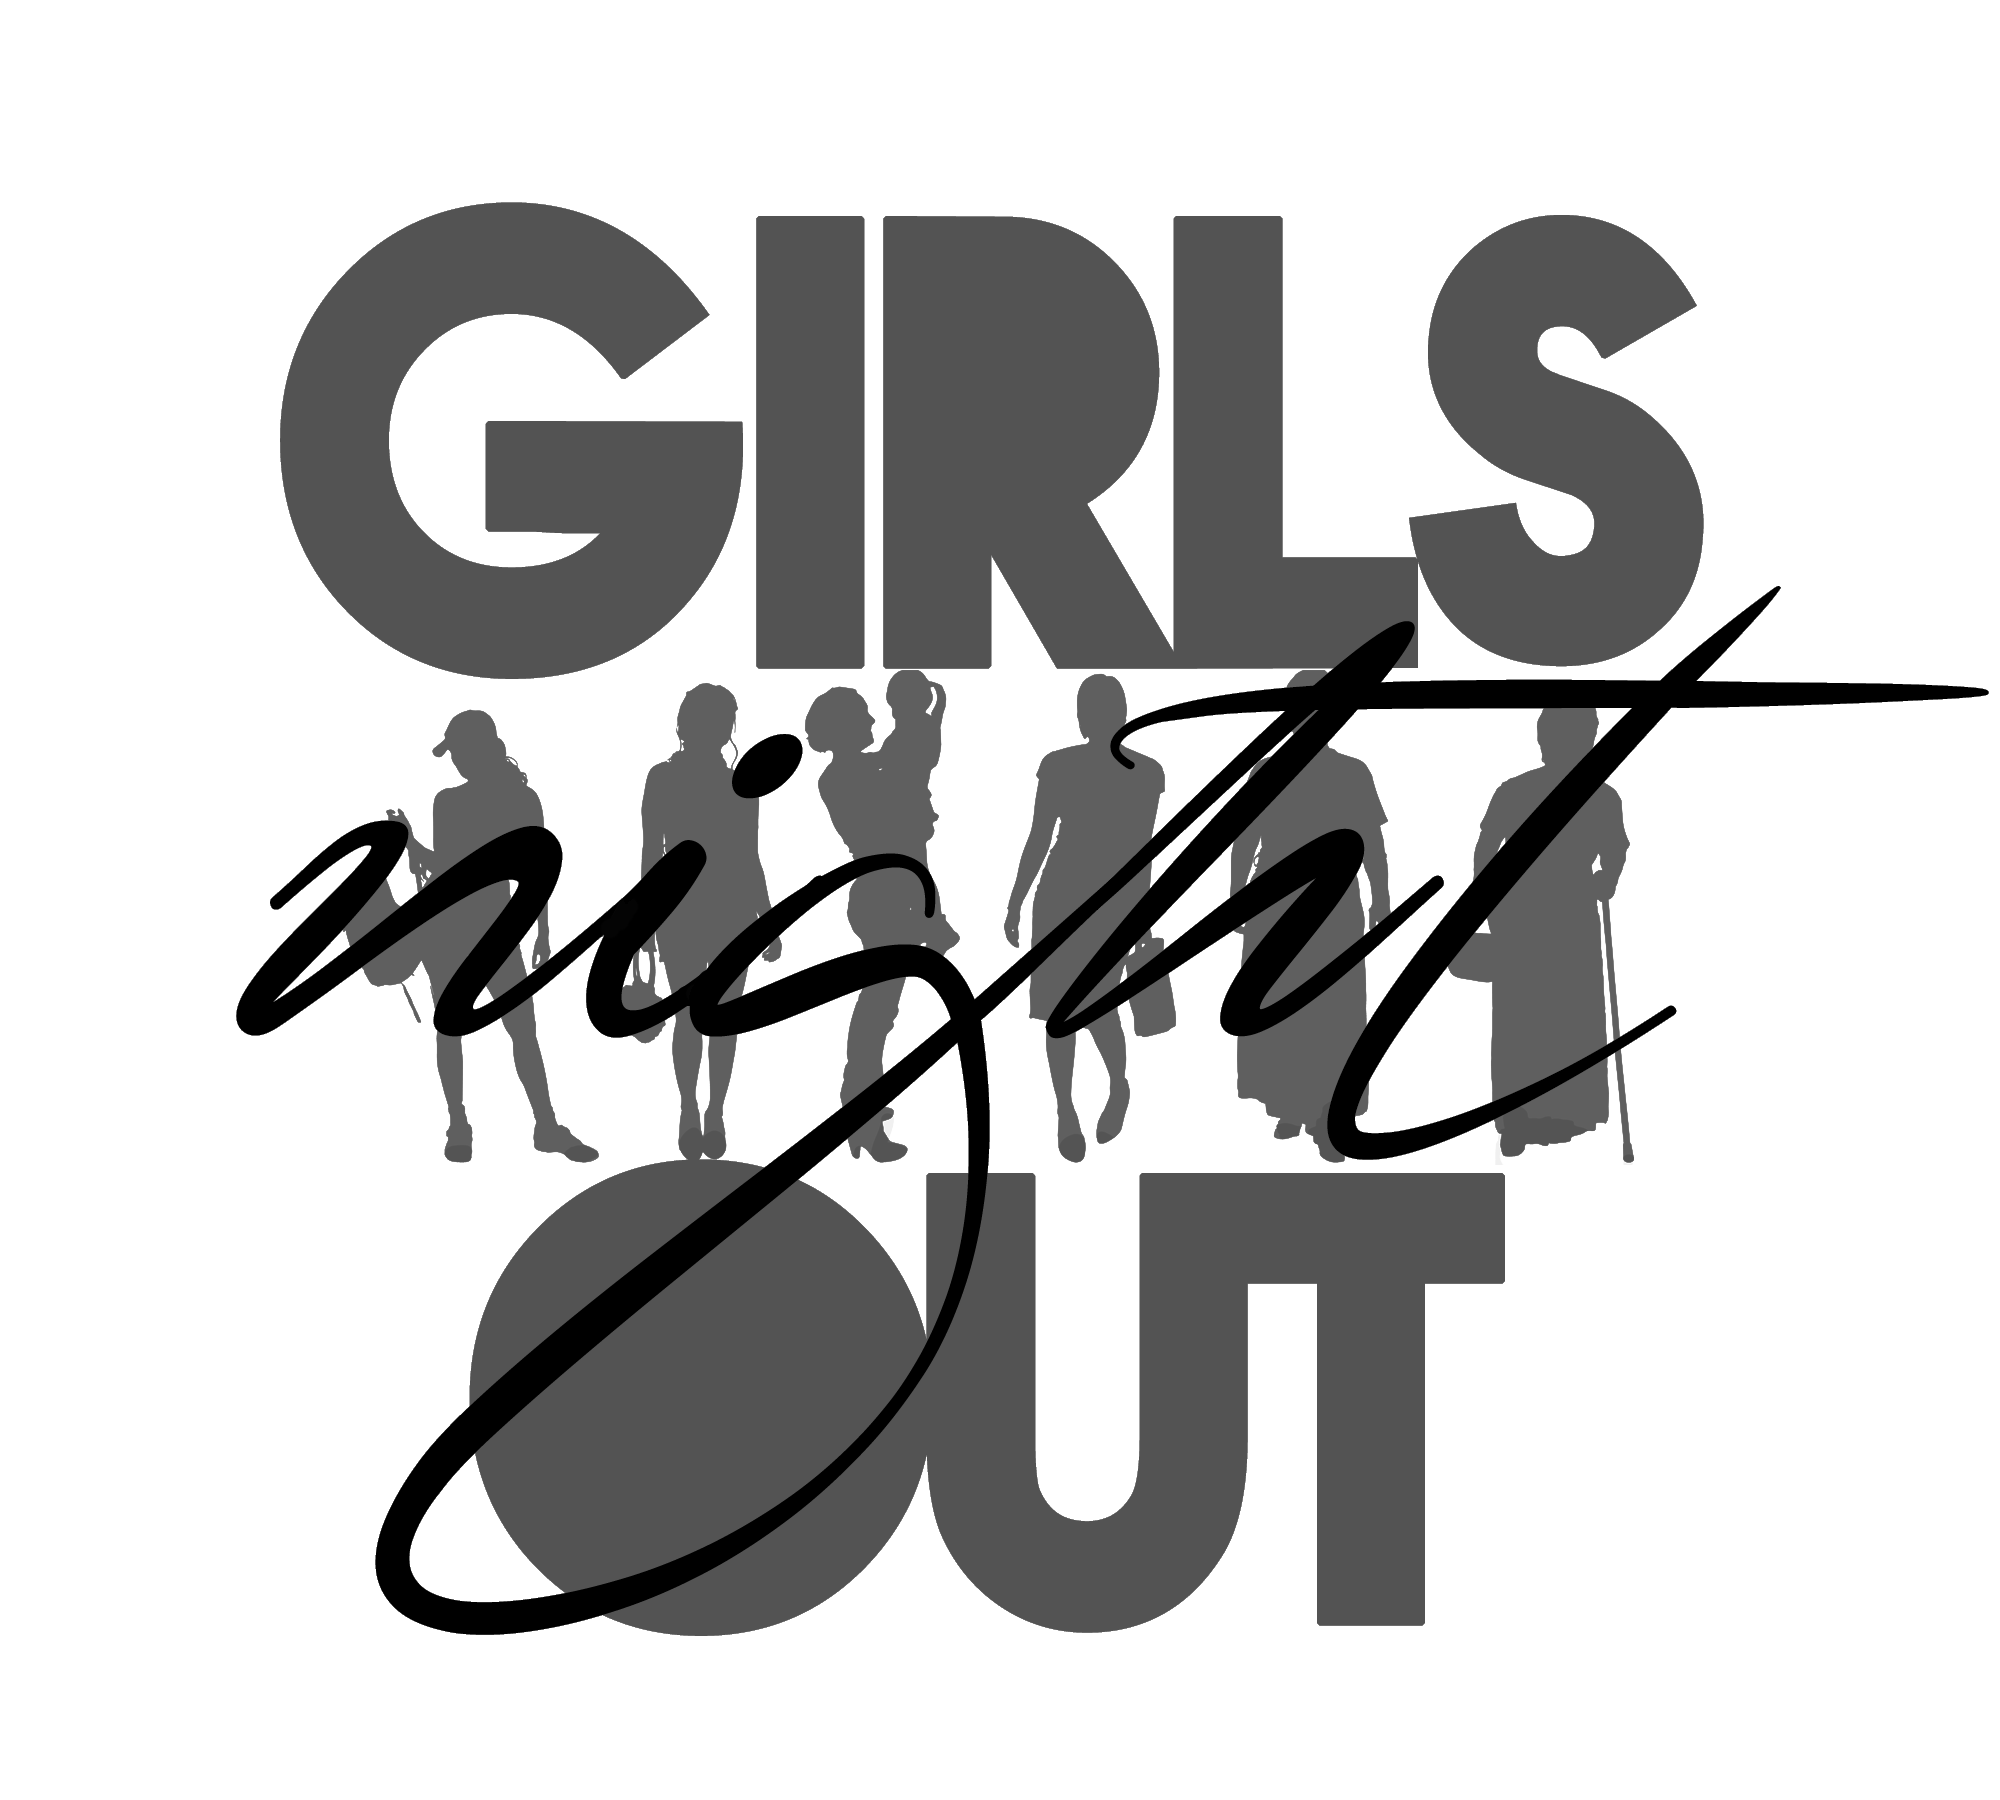 GIRLS NIGHT OUT - The GNO Team plans & executes monthly large group ministry meetings & events that feature worship, a guest speaker & connection time.registration | hospitality | decor | production | worship | prayerCLICK HERE TO SIGN UP FOR A FIRST SERVE